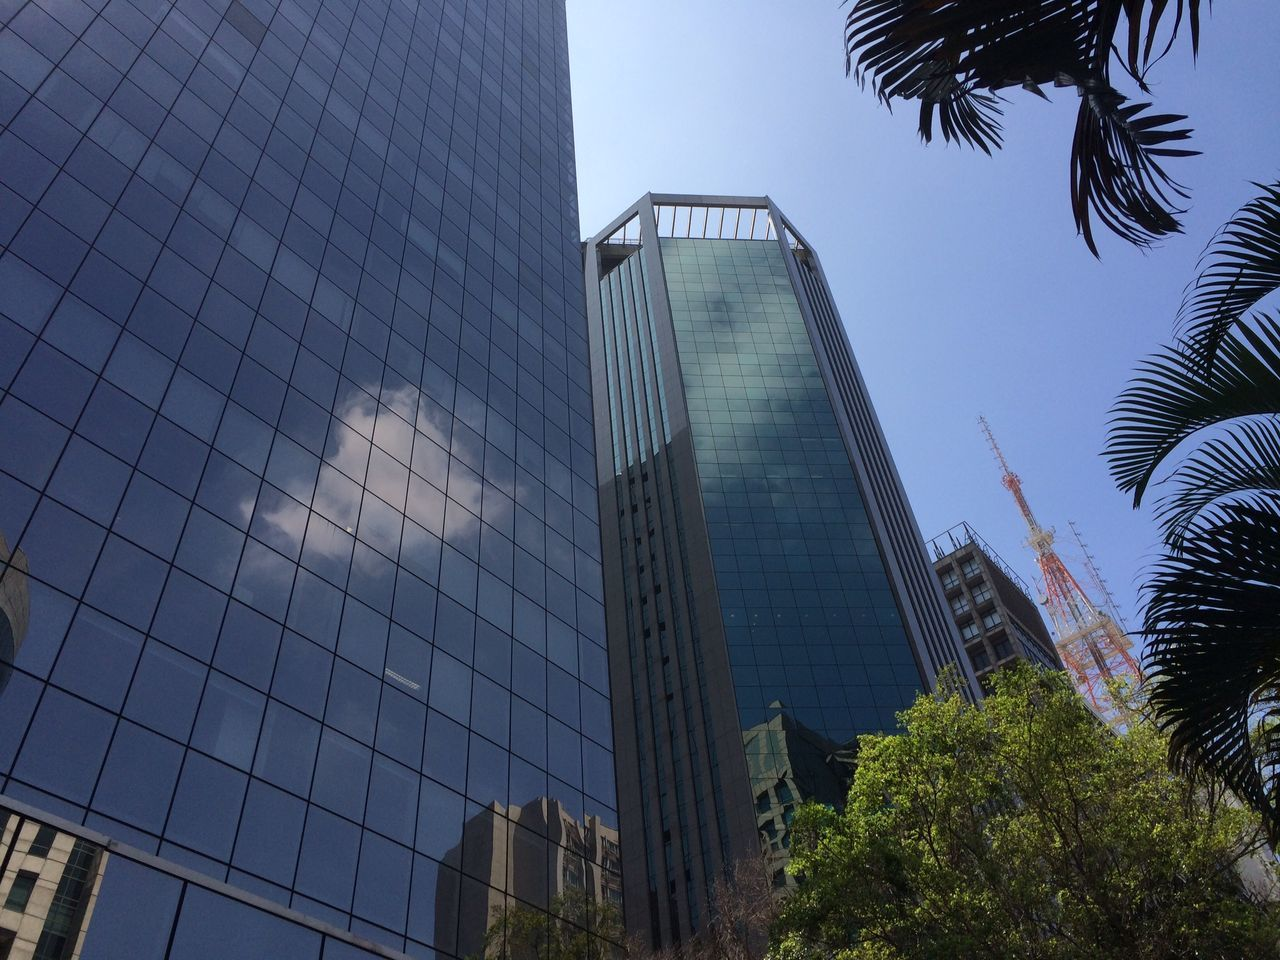 modern, skyscraper, architecture, reflection, building exterior, tree, growth, city, built structure, no people, business, outdoors, corporate business, palm tree, sky, day